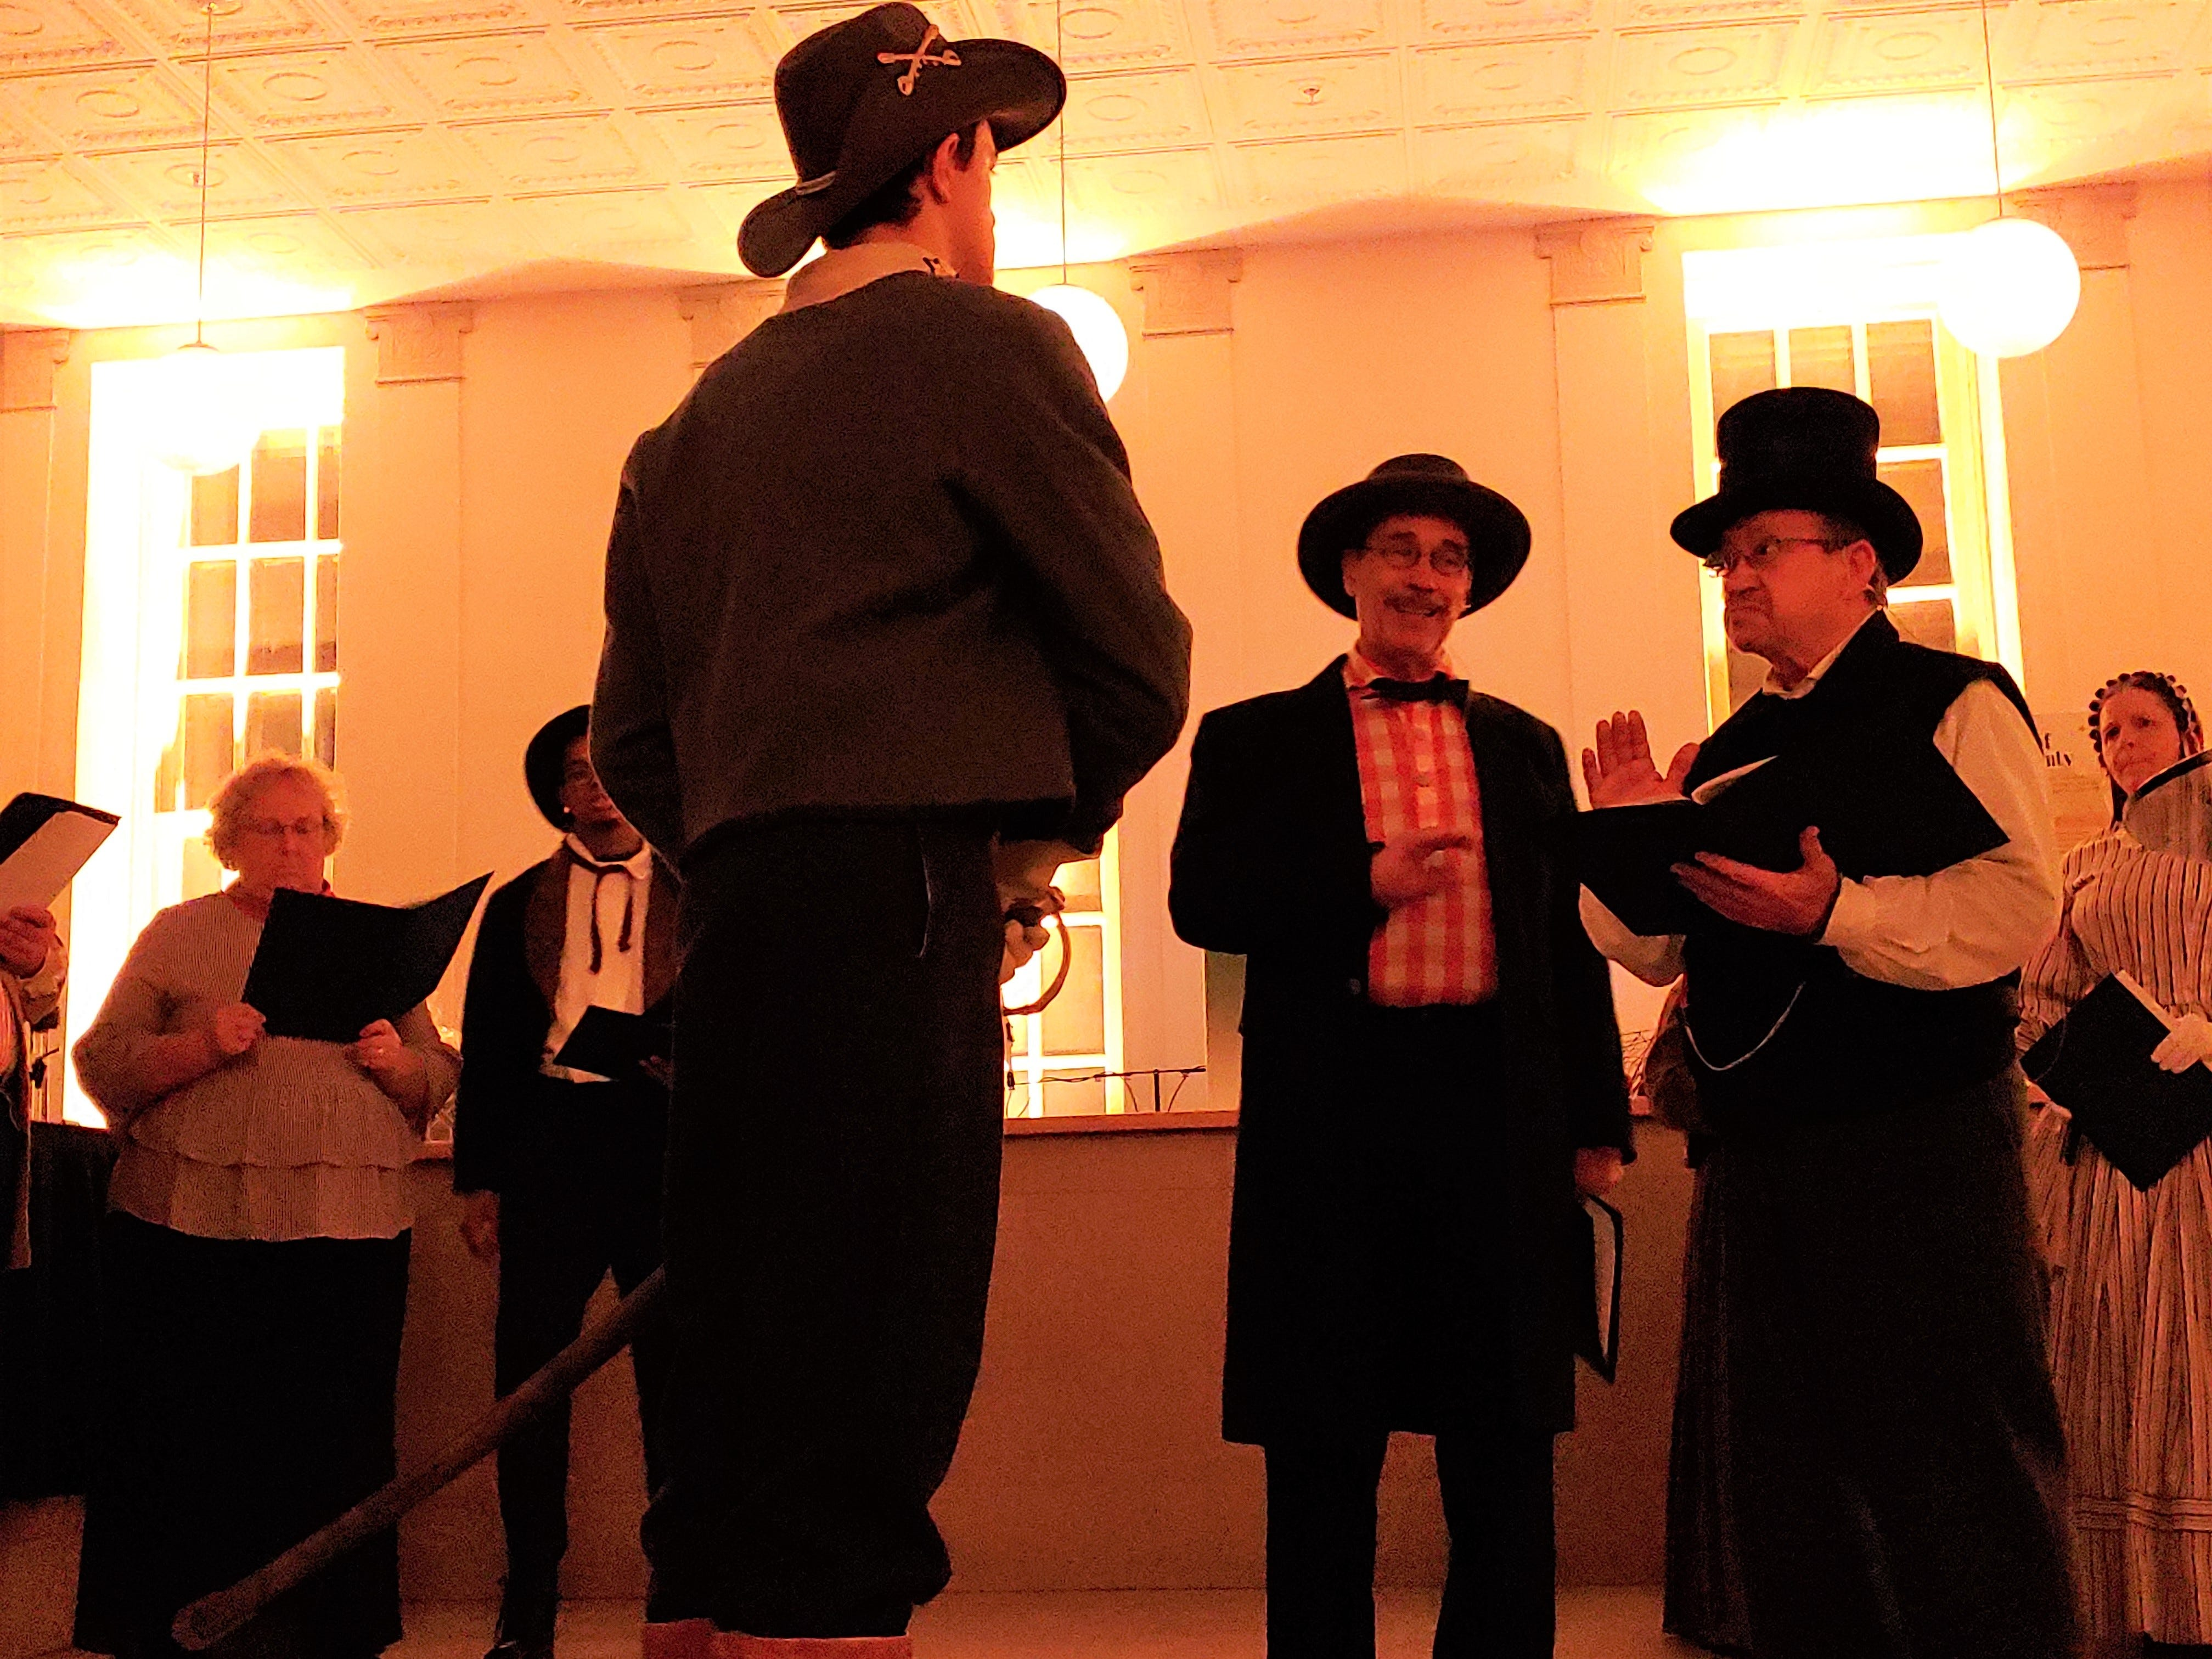 """Jacob Hoke, played by Charles Rittenhouse (left, front-facing), and Mr. Sharpe, played by John Shindledecker, talk to a Confederate soldier who has come to Chambersburg to announce the town will be burned if a ransom is not paid. Franklin County Visitors Bureau presented """"300 Year's of America's History,"""" including the 1864 Ransoming, Burning and Rebirth of Chambersburg, during the grand opening of the 11/30 Welcome Center on Saturday, Nov. 24, 2018. Featured were Andy Newman, Bryton Zook, Carlos Lee, Charles Rittenhouse, David Moore, Dawn Snider, Emily Martin, John Shindledecker, Nancy Godfrey and Susan Wall."""